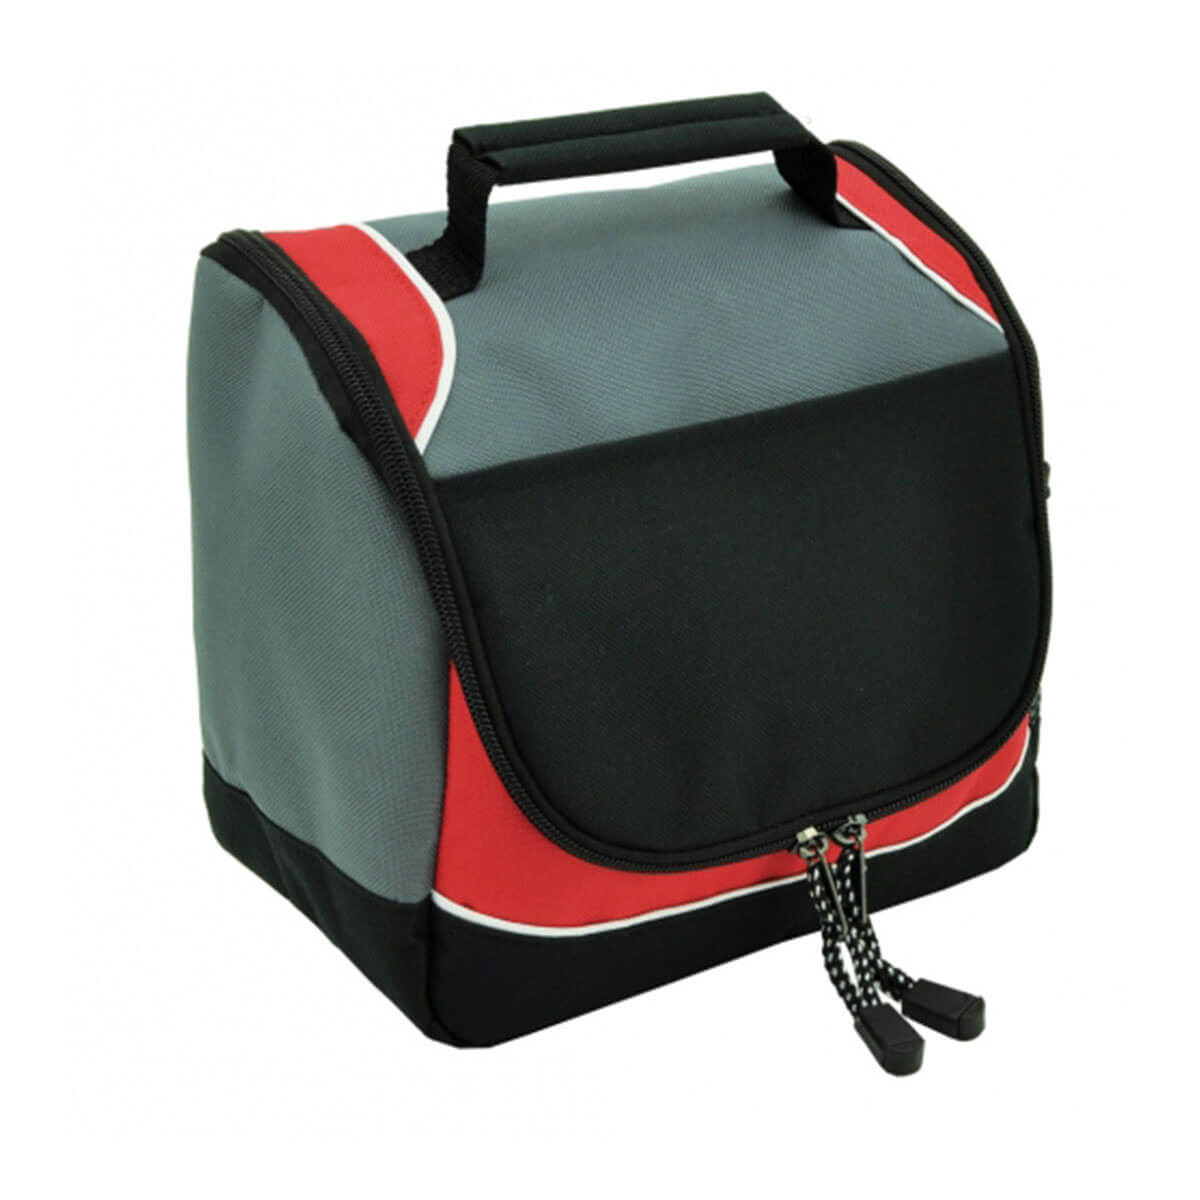 Rydges cooler bag-Black / Red / White / Charcoal